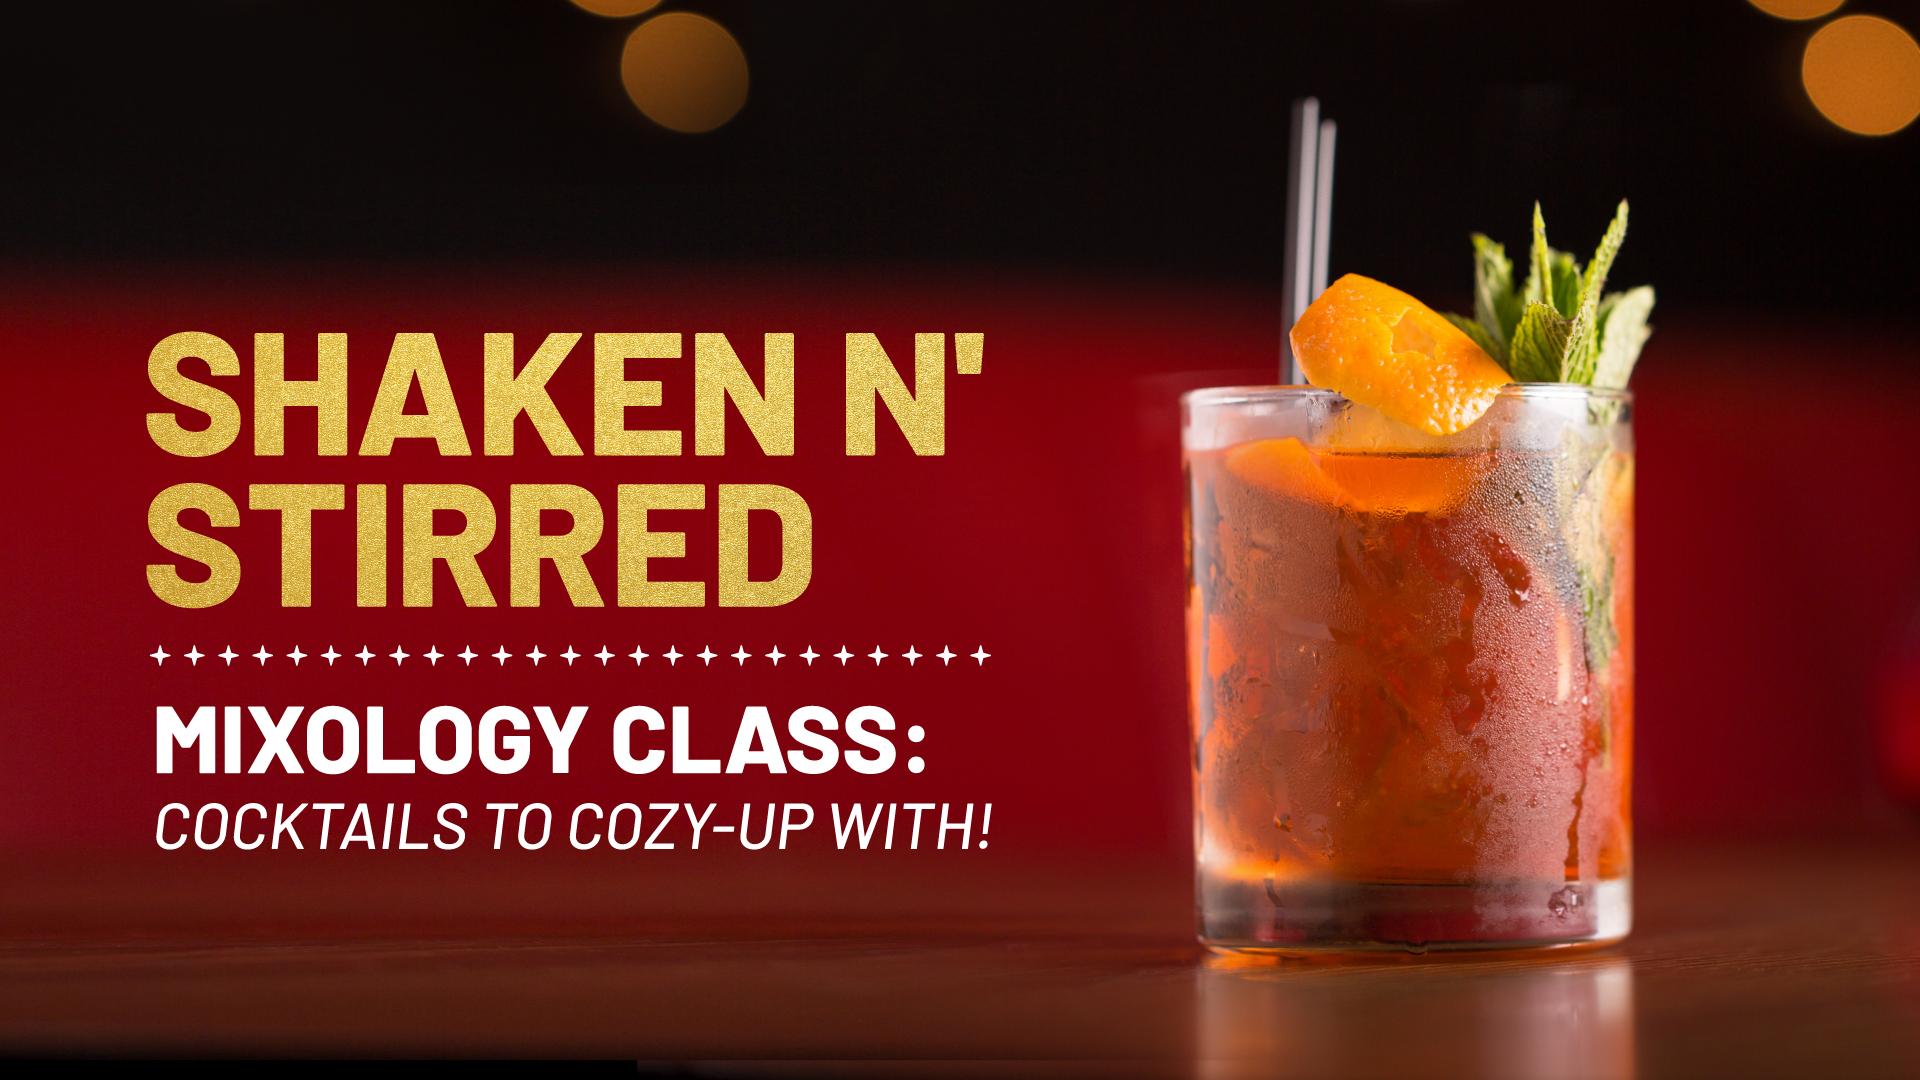 Promo image of Shaken N' Stirred: Cozy Cocktails Class